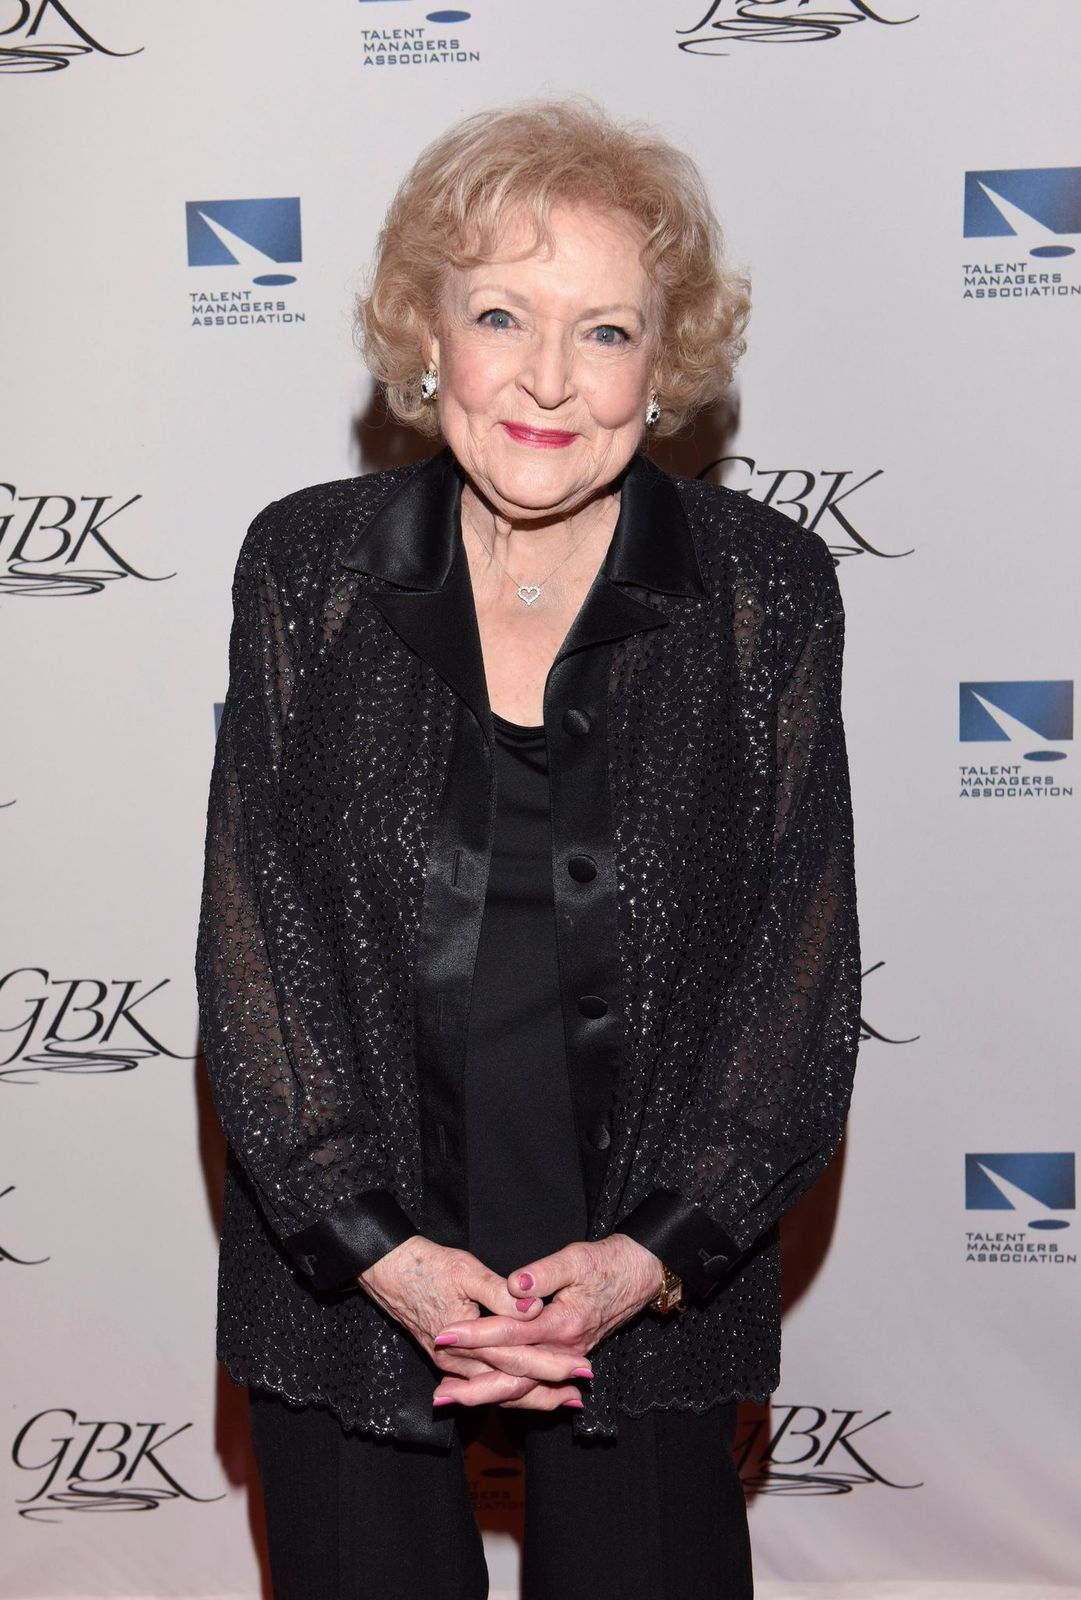 Betty White at The TMA Heller Awards on May 28, 2015 in Century City, California Photo Getty Images